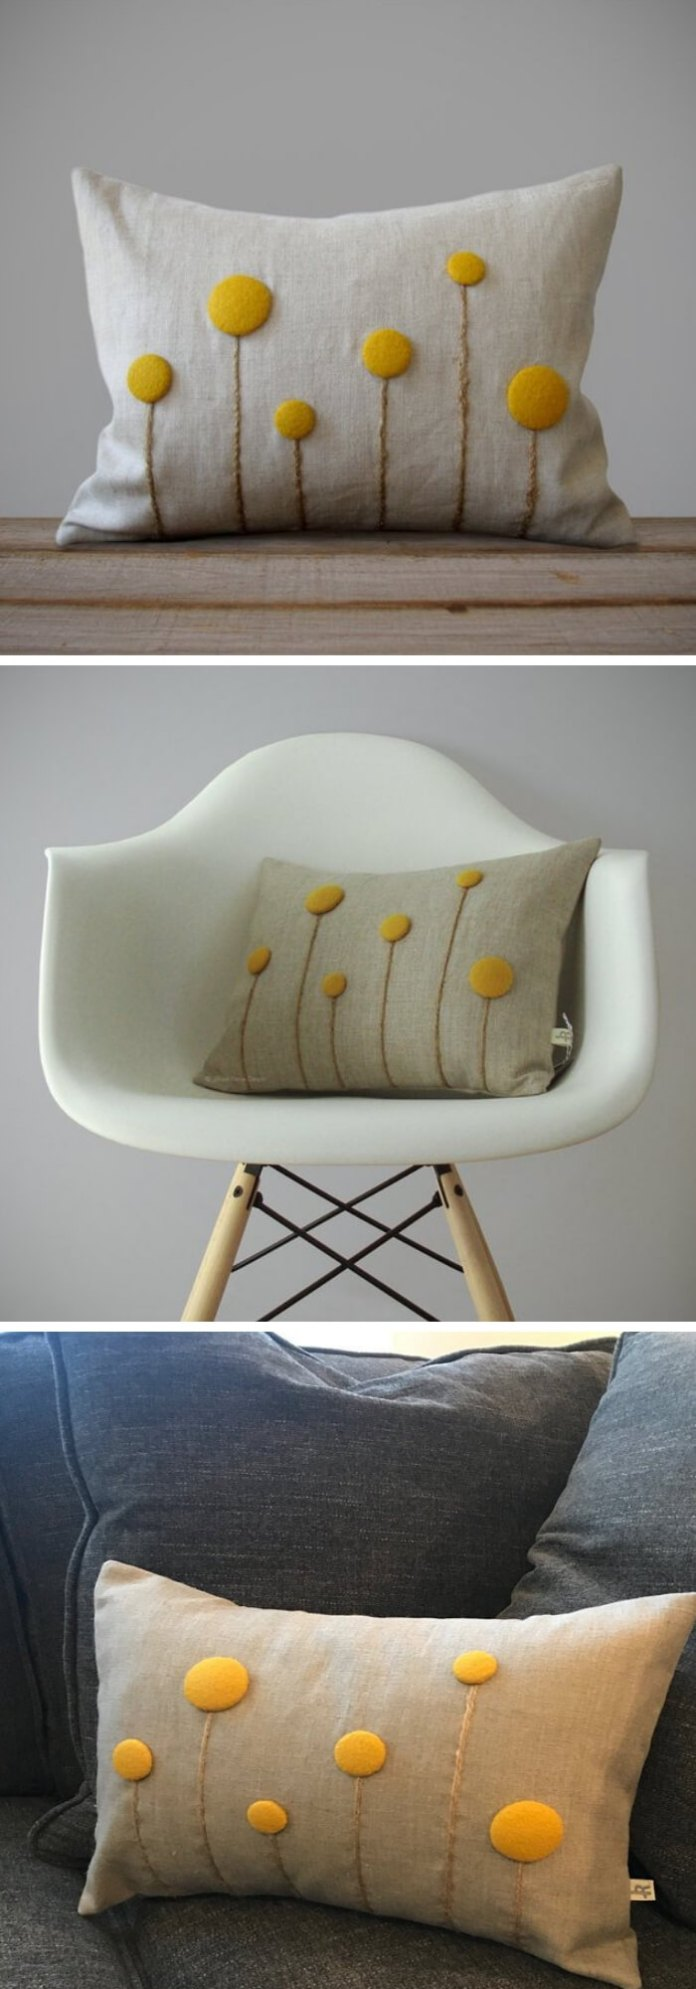 Home Decorating Ideas With Flowers: Yellow Billy Ball Flower Pillow in Natural Linen